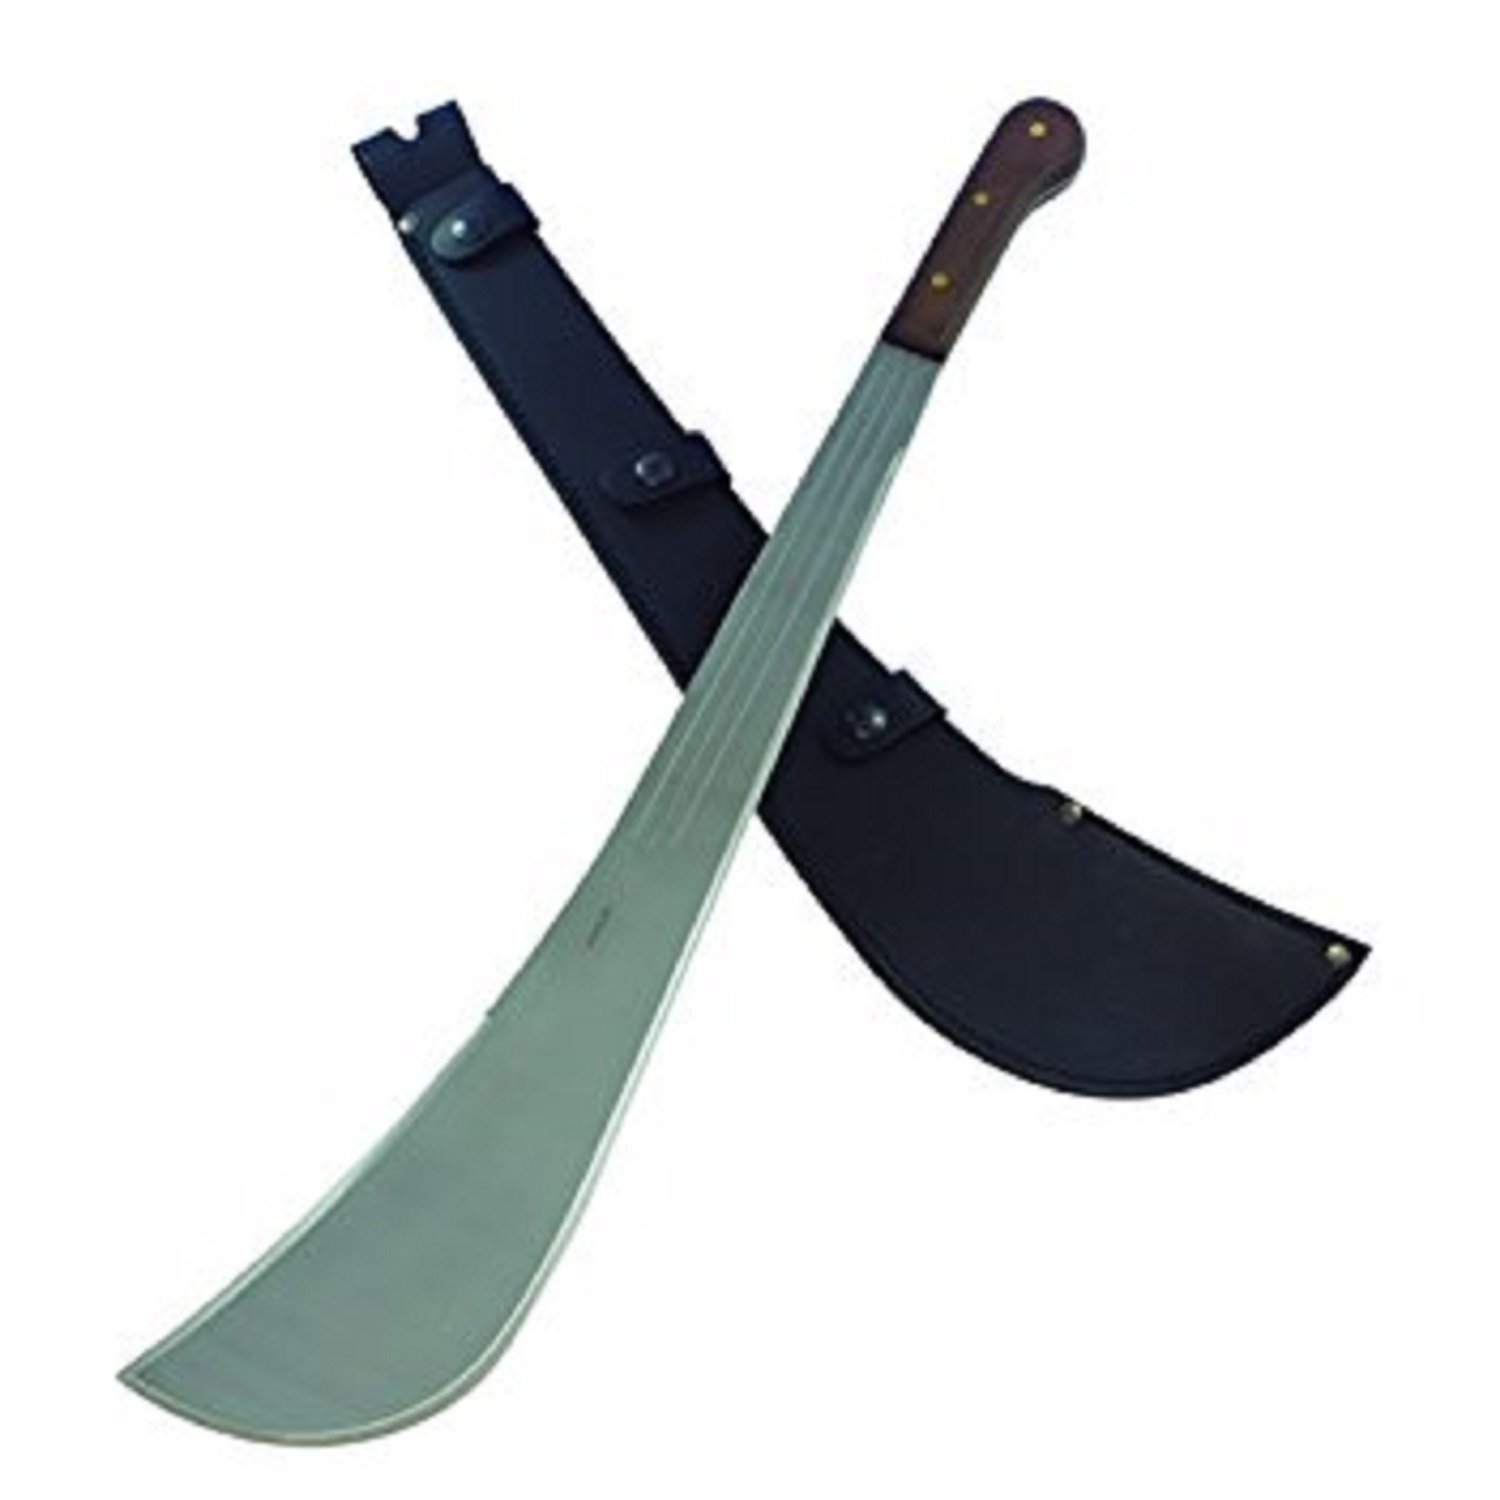 Condor Viking Machete 20in Blade 26in Overall w/Sheath